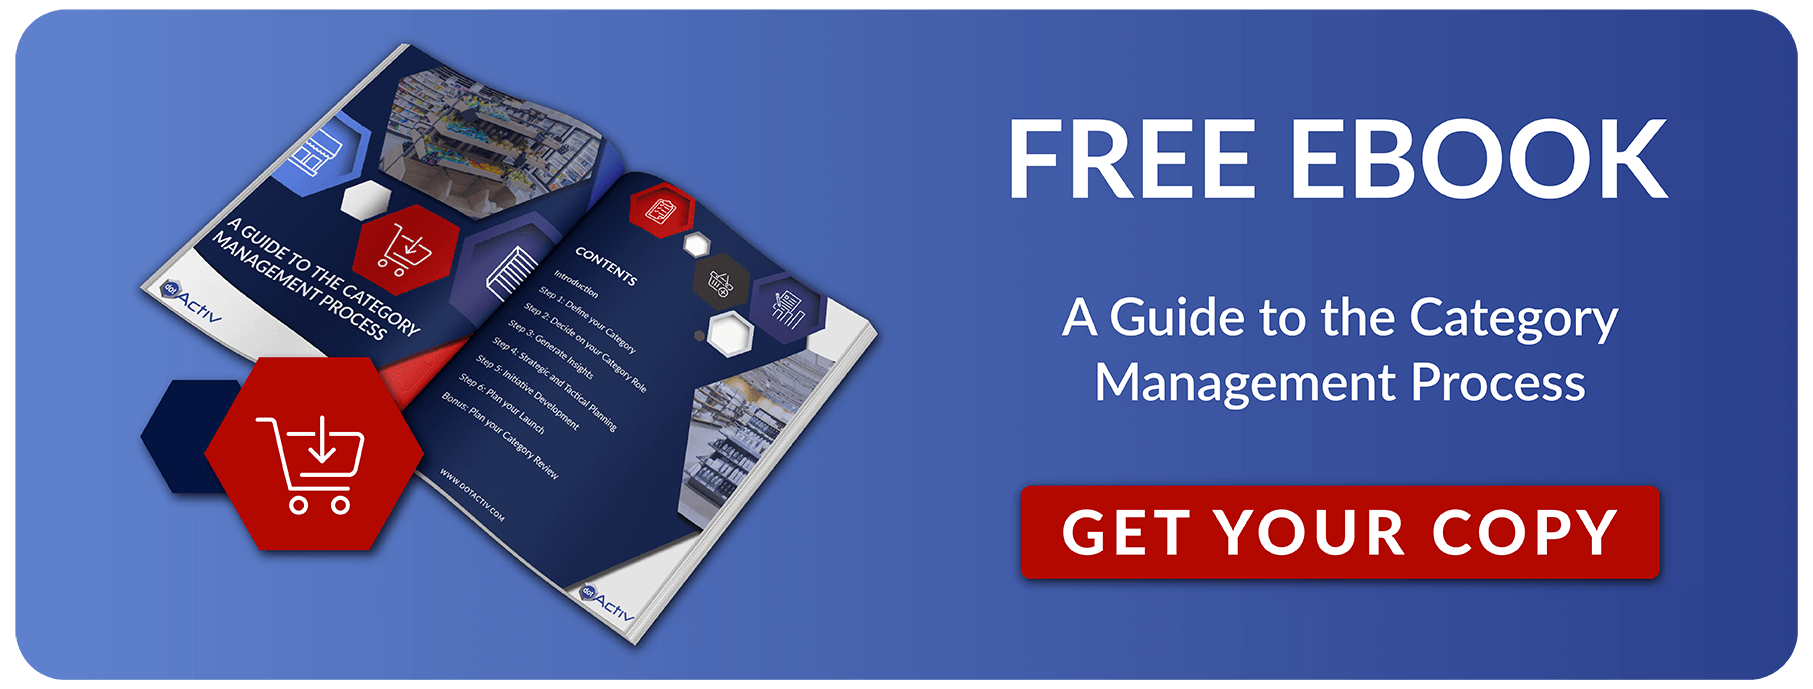 Category Management Process Ebook